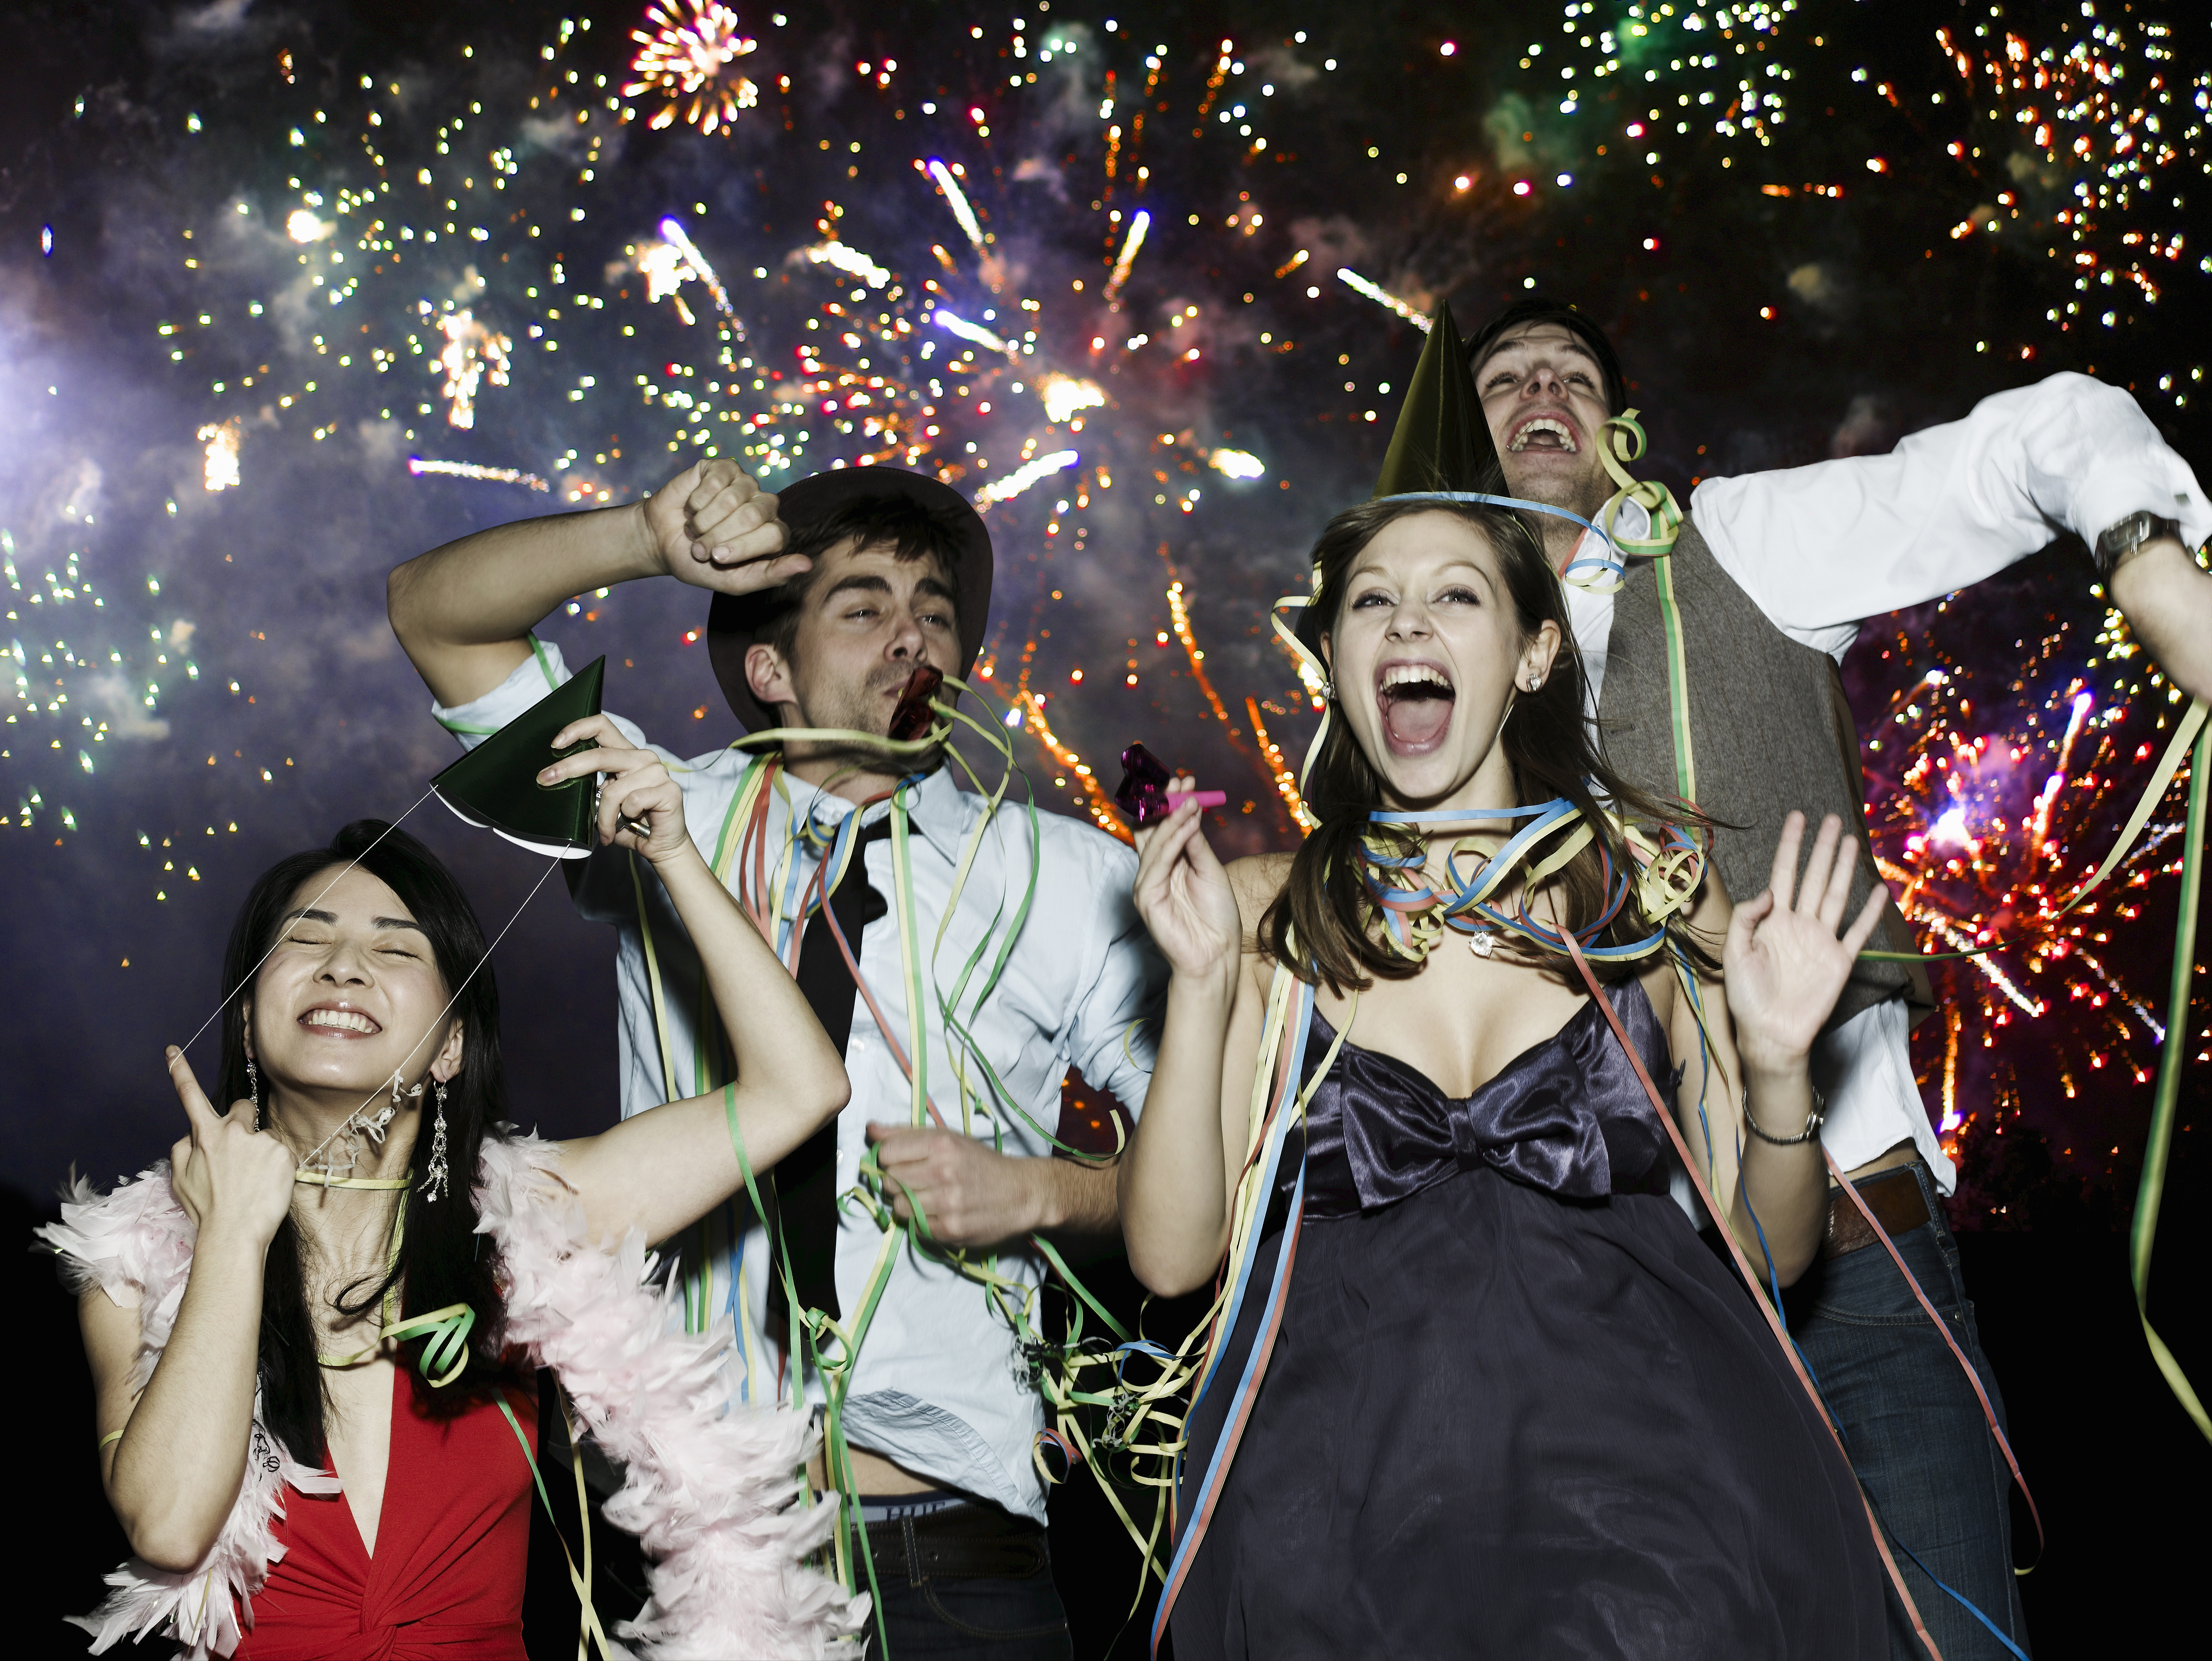 7 must-haves for throwing the best end of Mercury retrograde/NYE party EVER